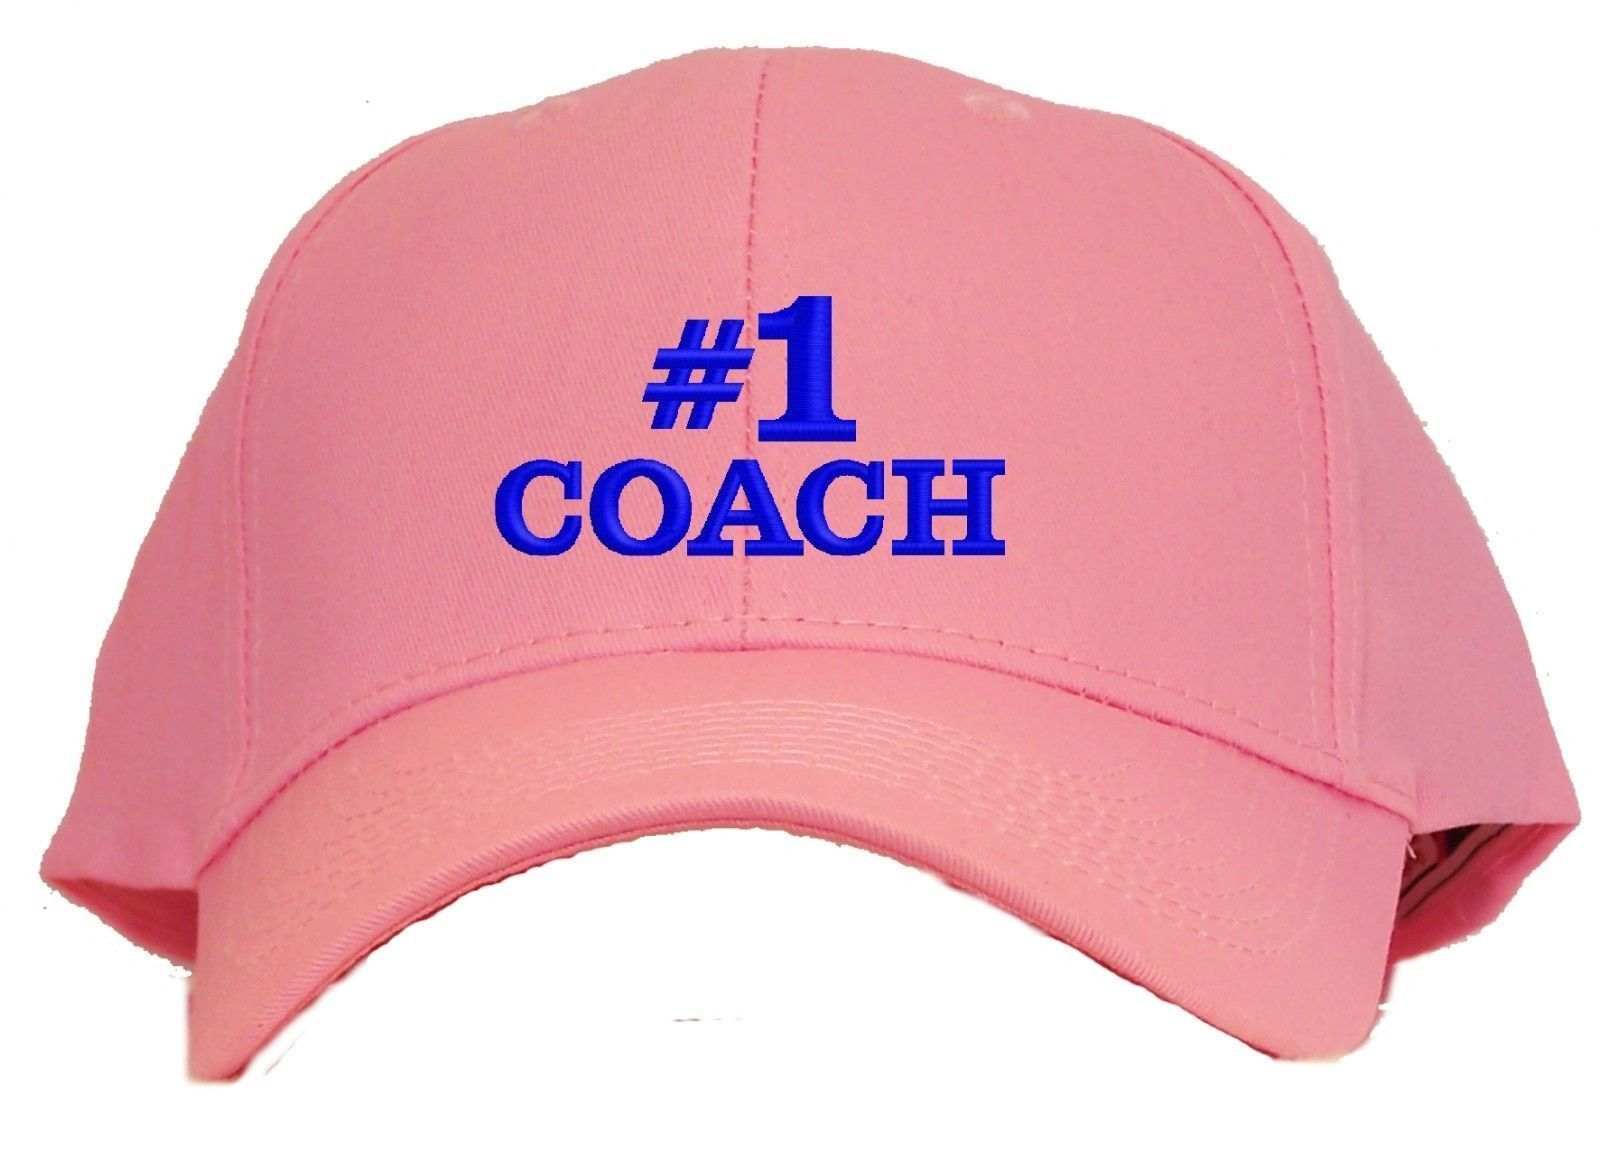 #1 Coach Embroidered Baseball Cap - Available in 7 Colors - Hat